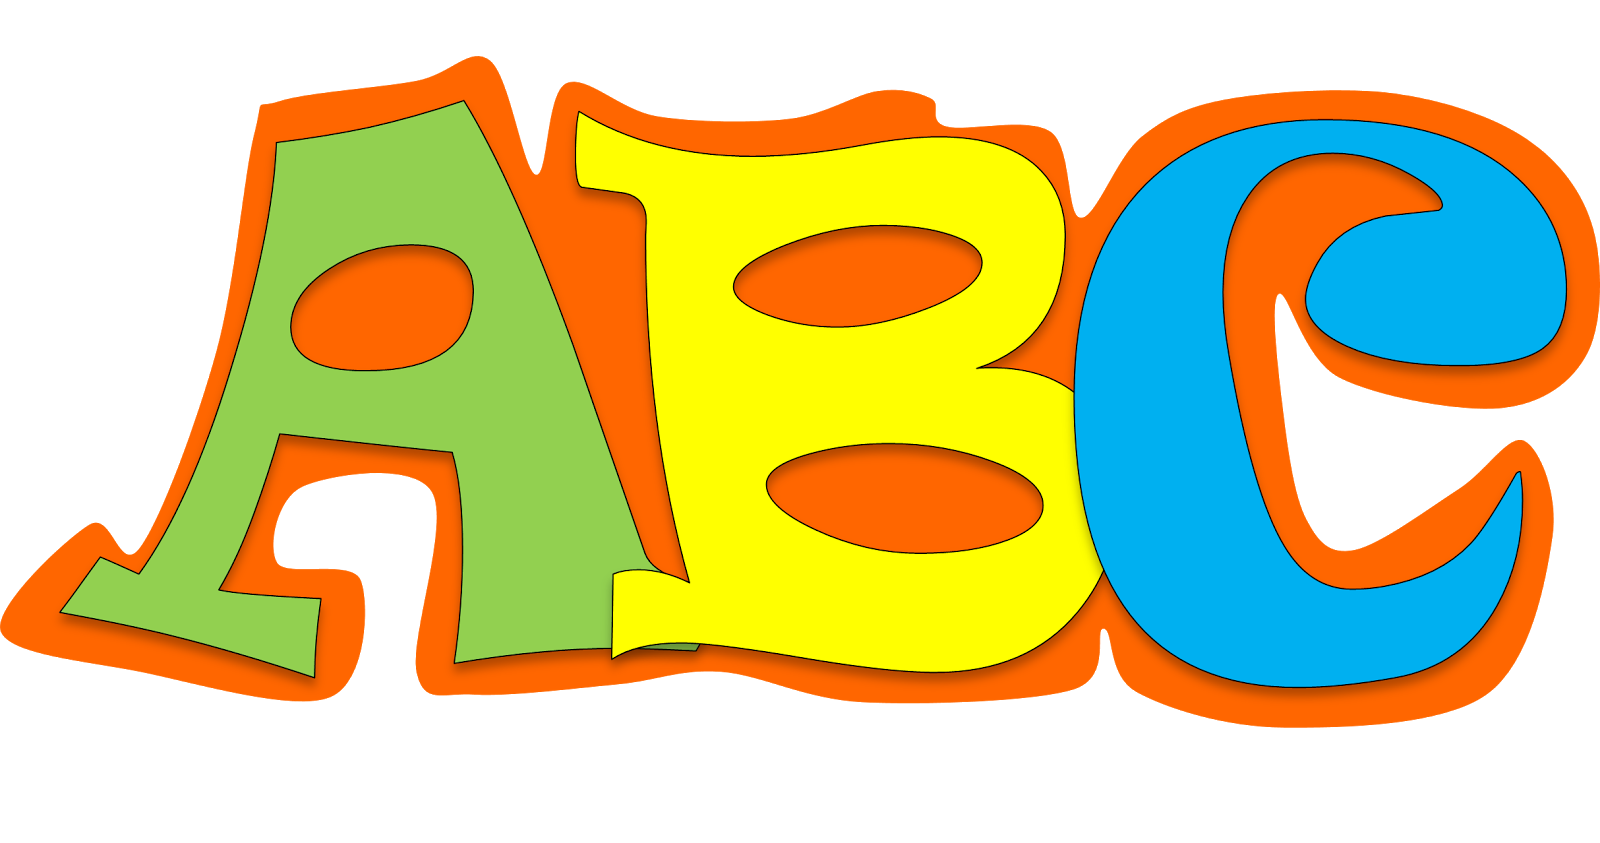 Alphabet clipart png. Collection of high